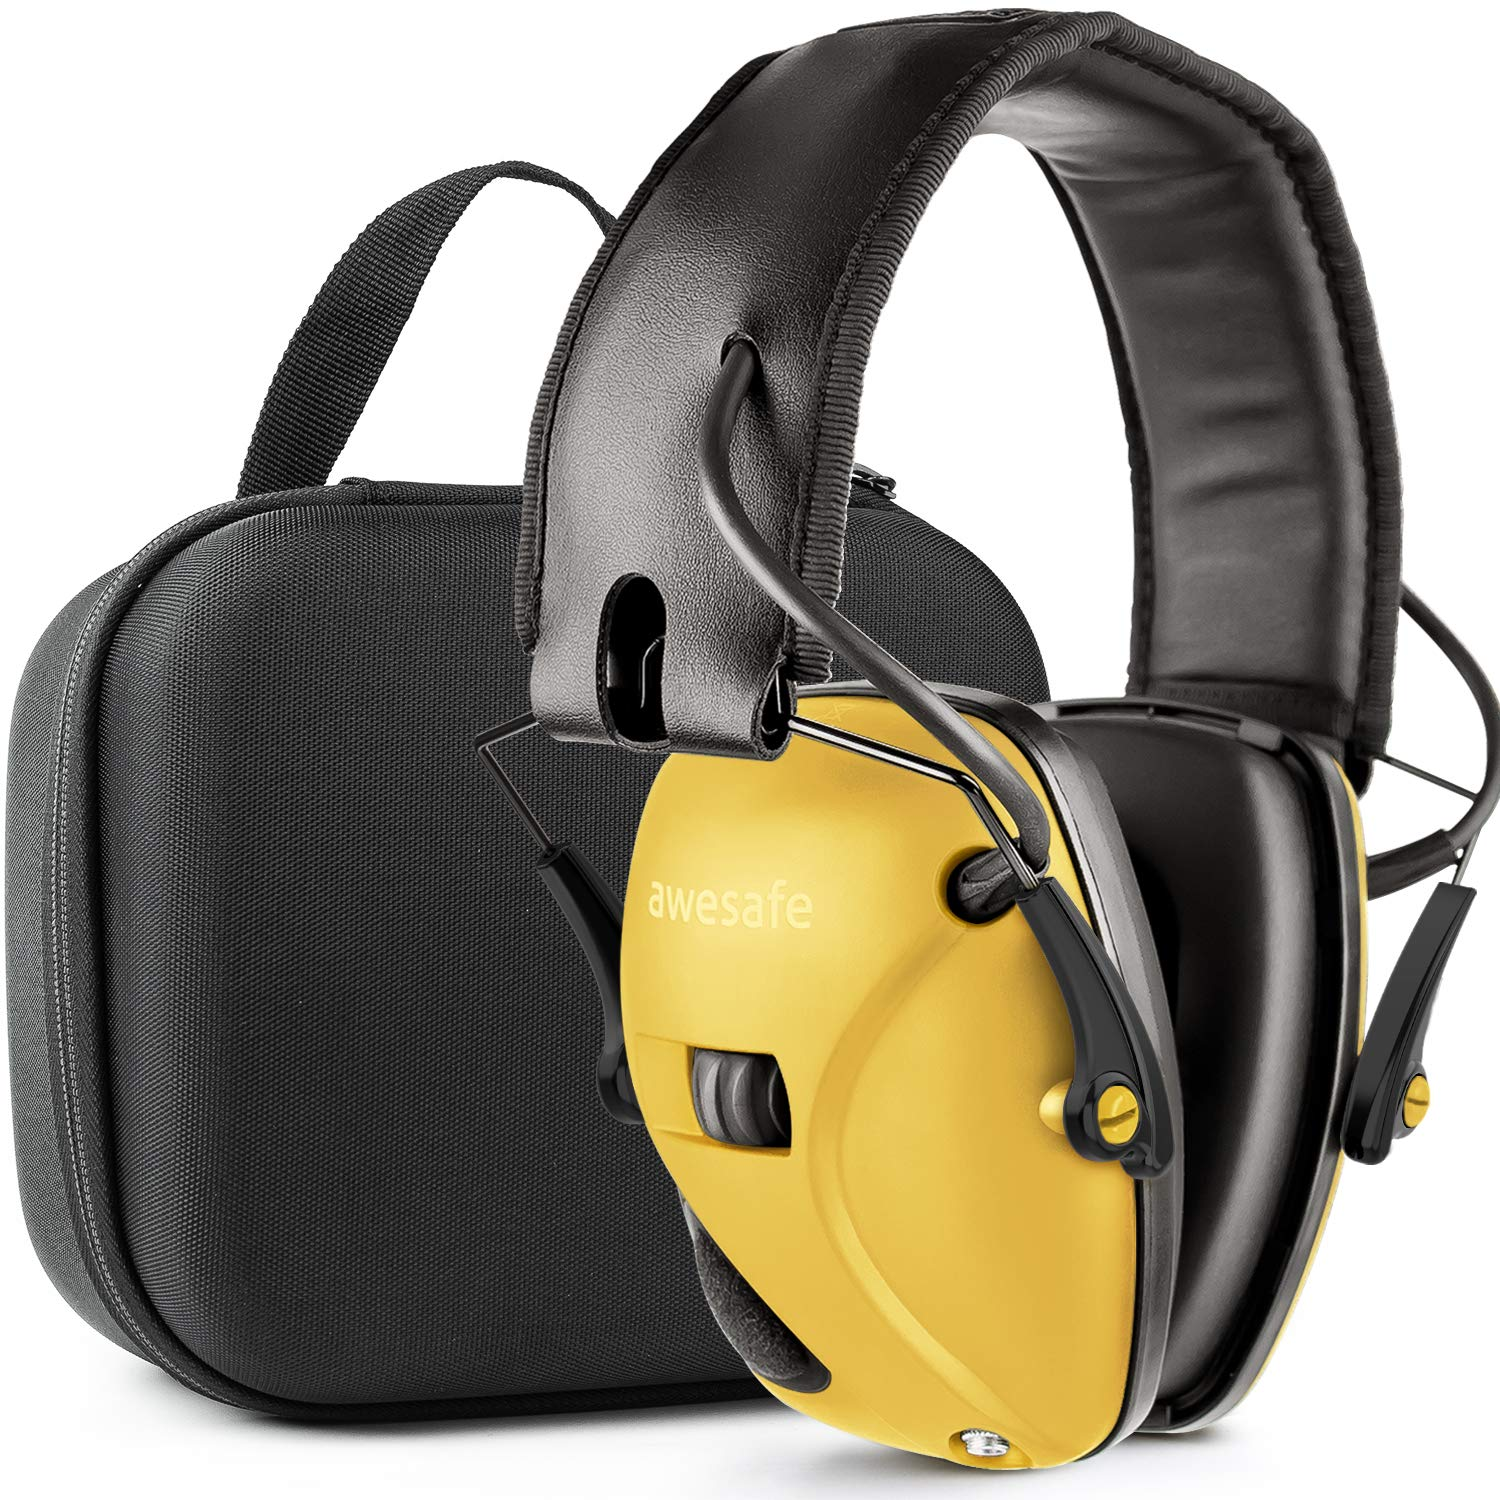 Awesafe Ear Protection for Shooting Range,Electronic Hearing Protection for Impact Sport [with Travel Storage Carrying Case Bag],Safety Ear Muffs, NRR 22, Ideal for Shooters and Hunting,Yellow by awesafe